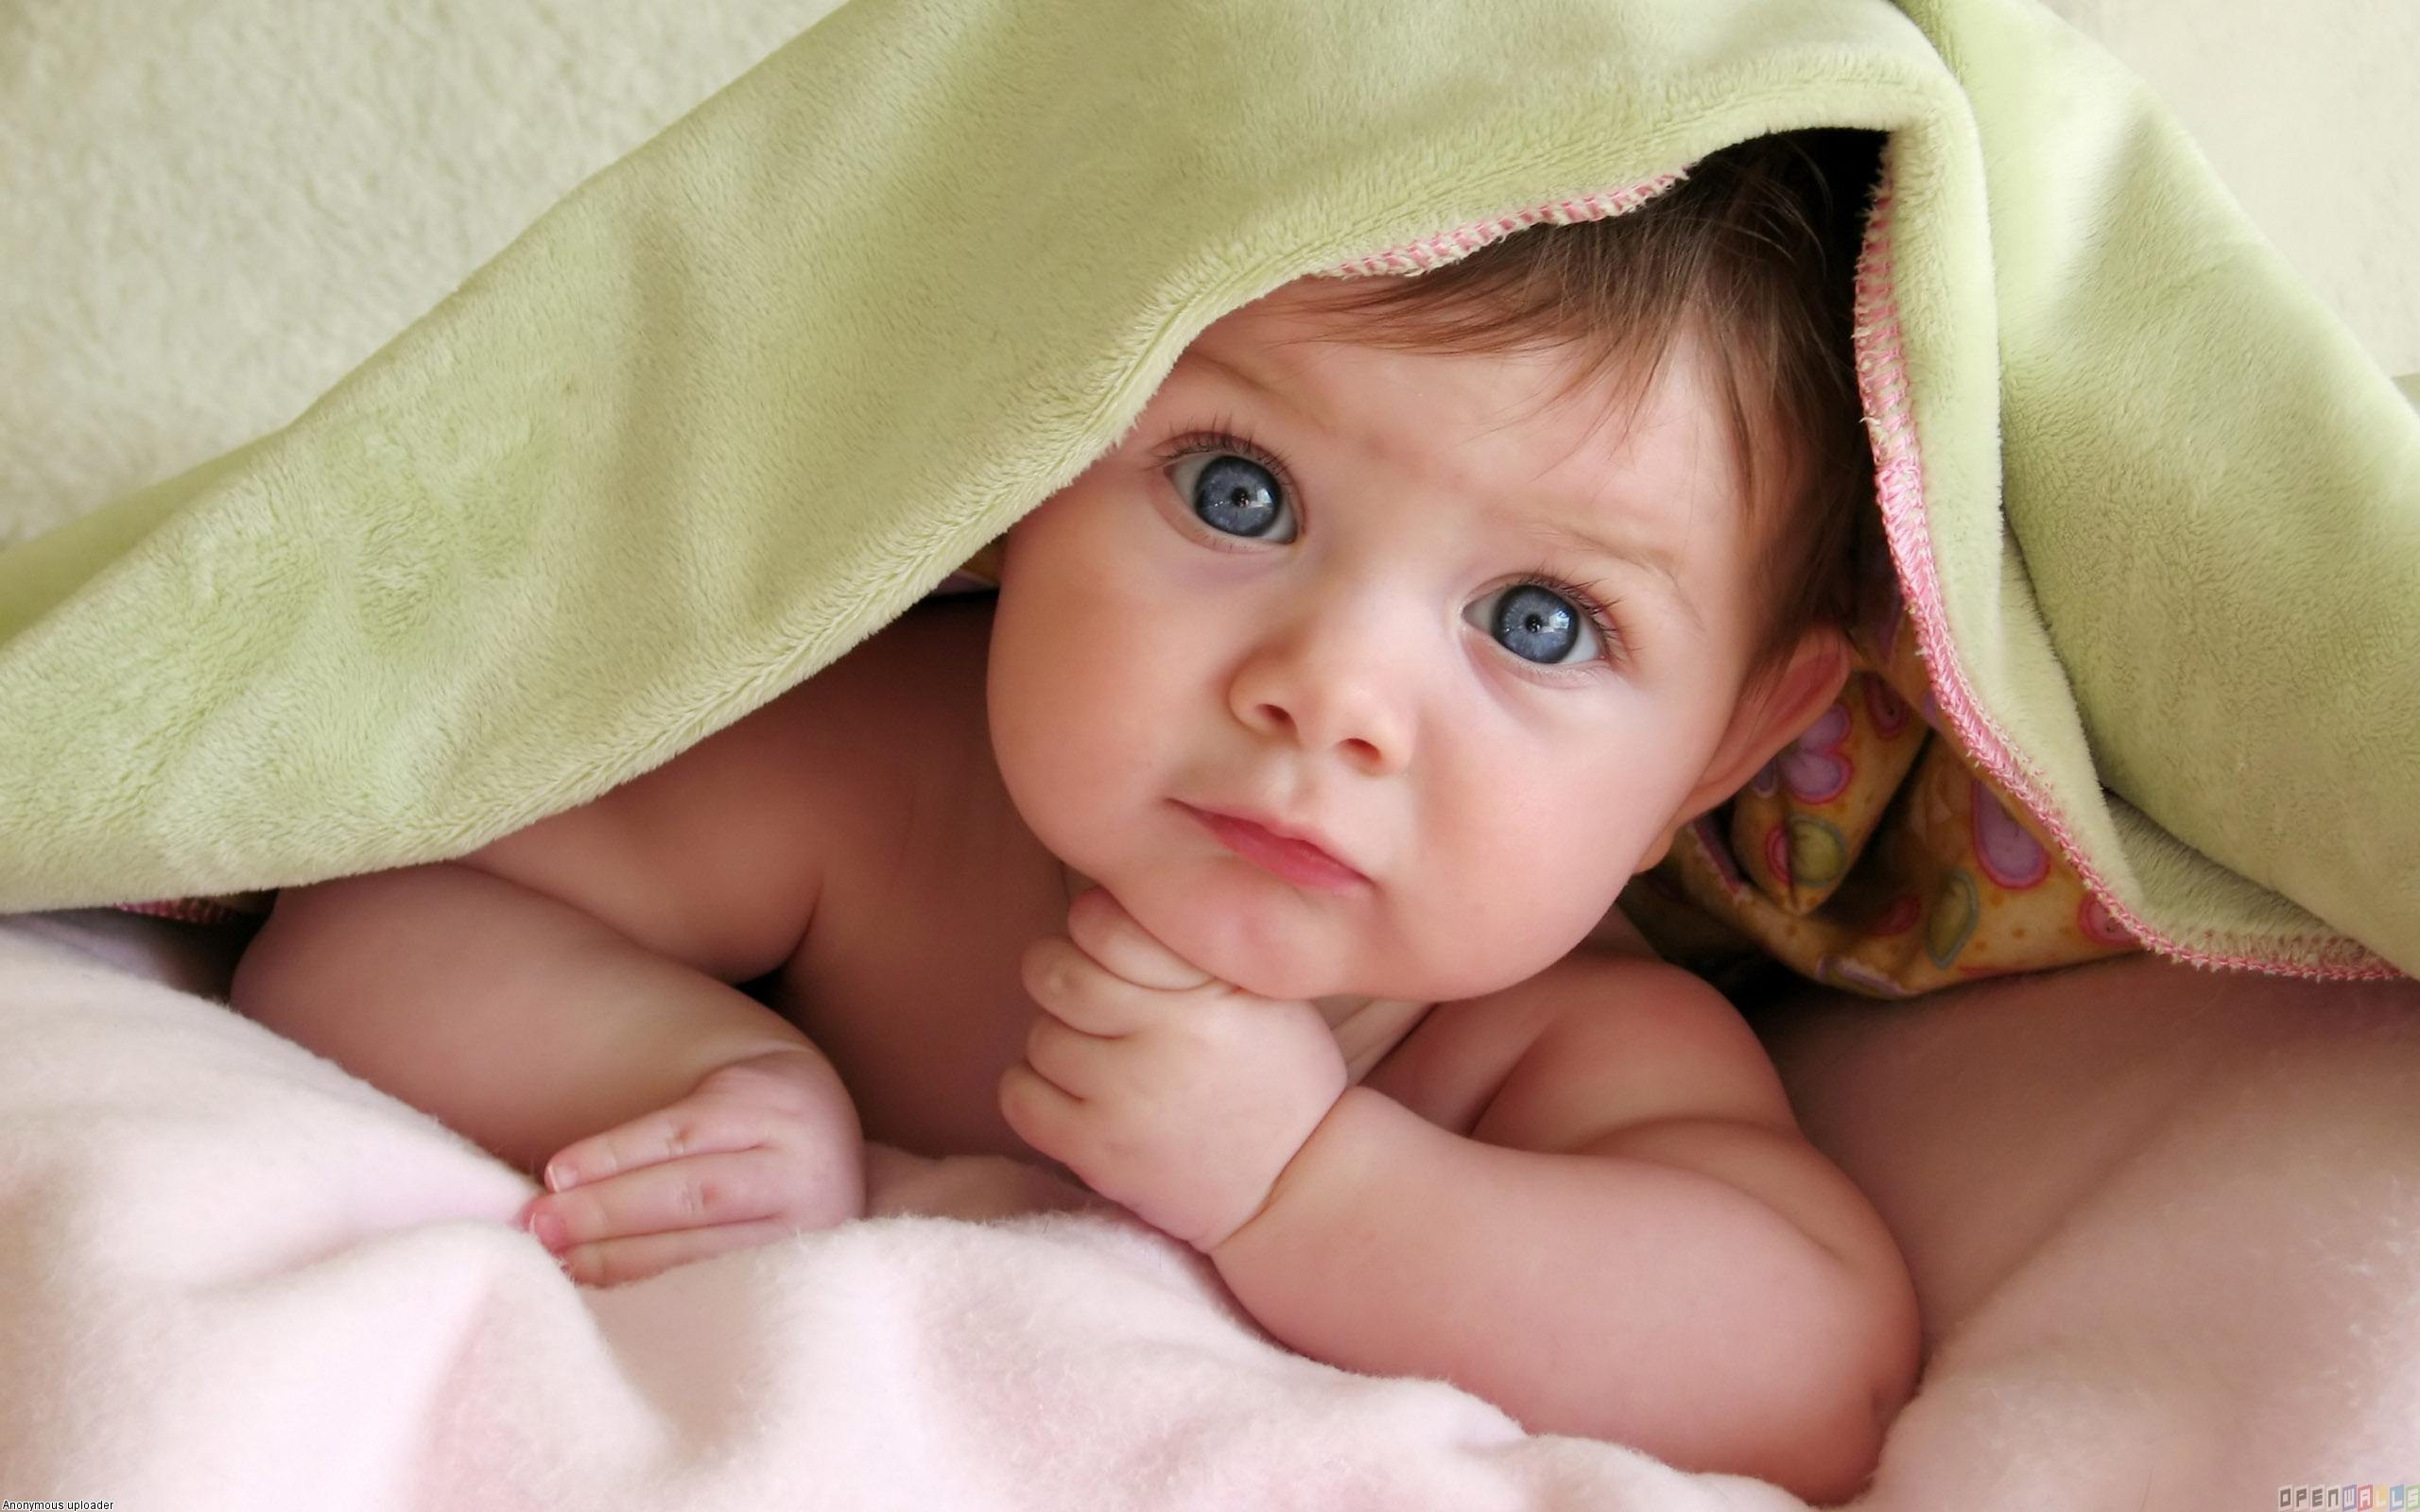 Cute Baby Girl in Bedsheet Wallpaper